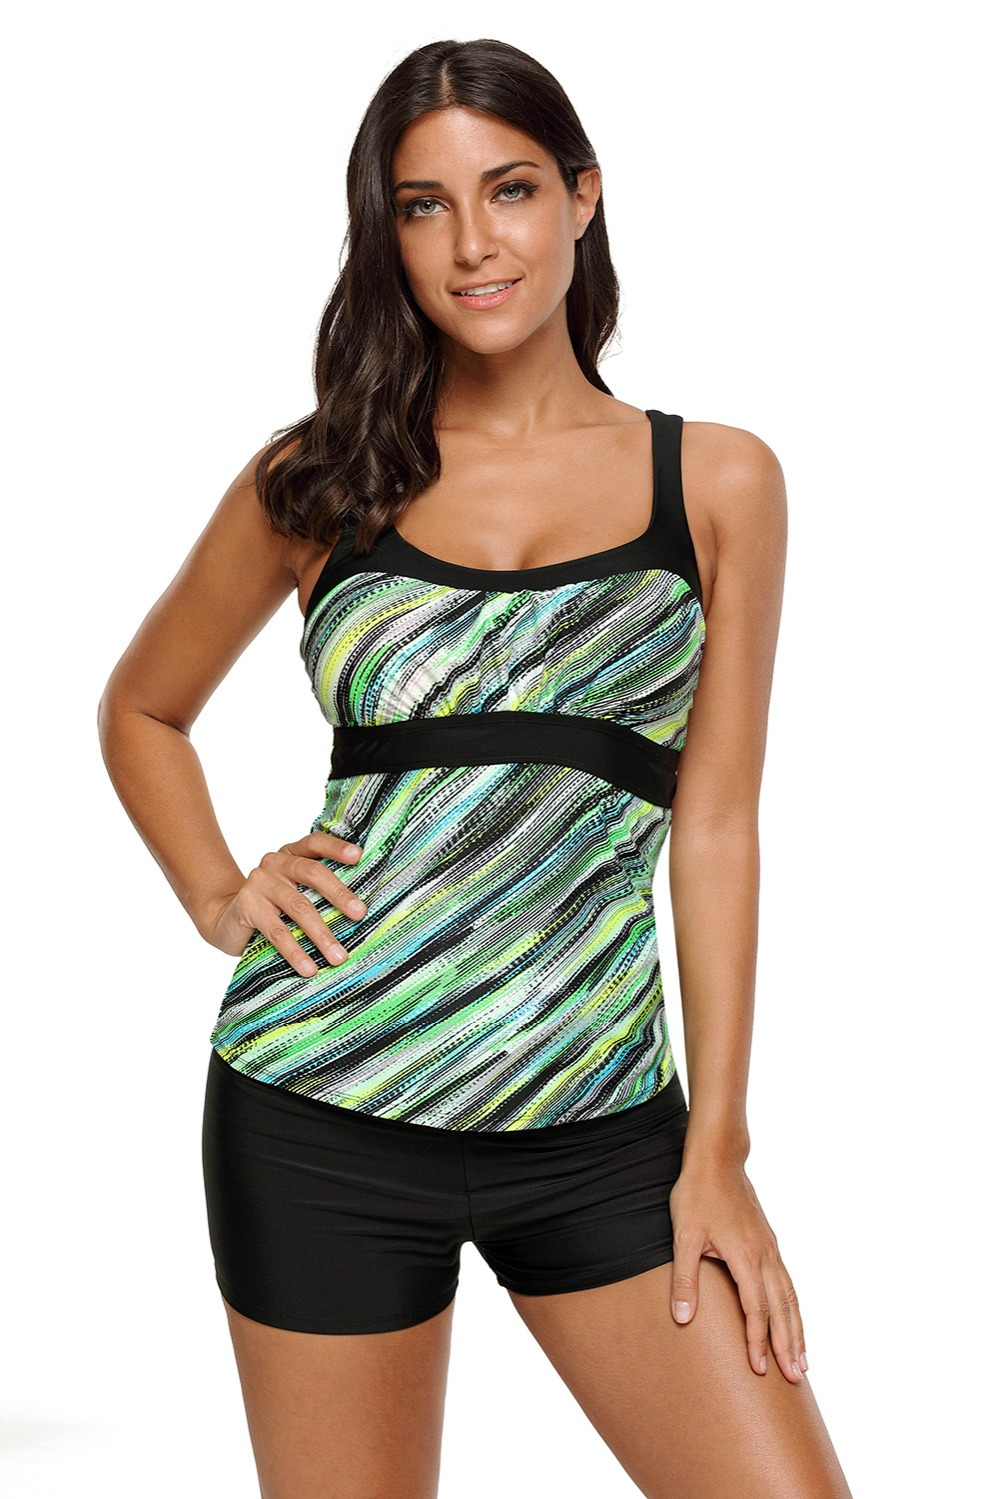 326601c92d4 2019 2XL 3XL Plus Size Swimsuit Top Blue Abstract Printed Camisole ...